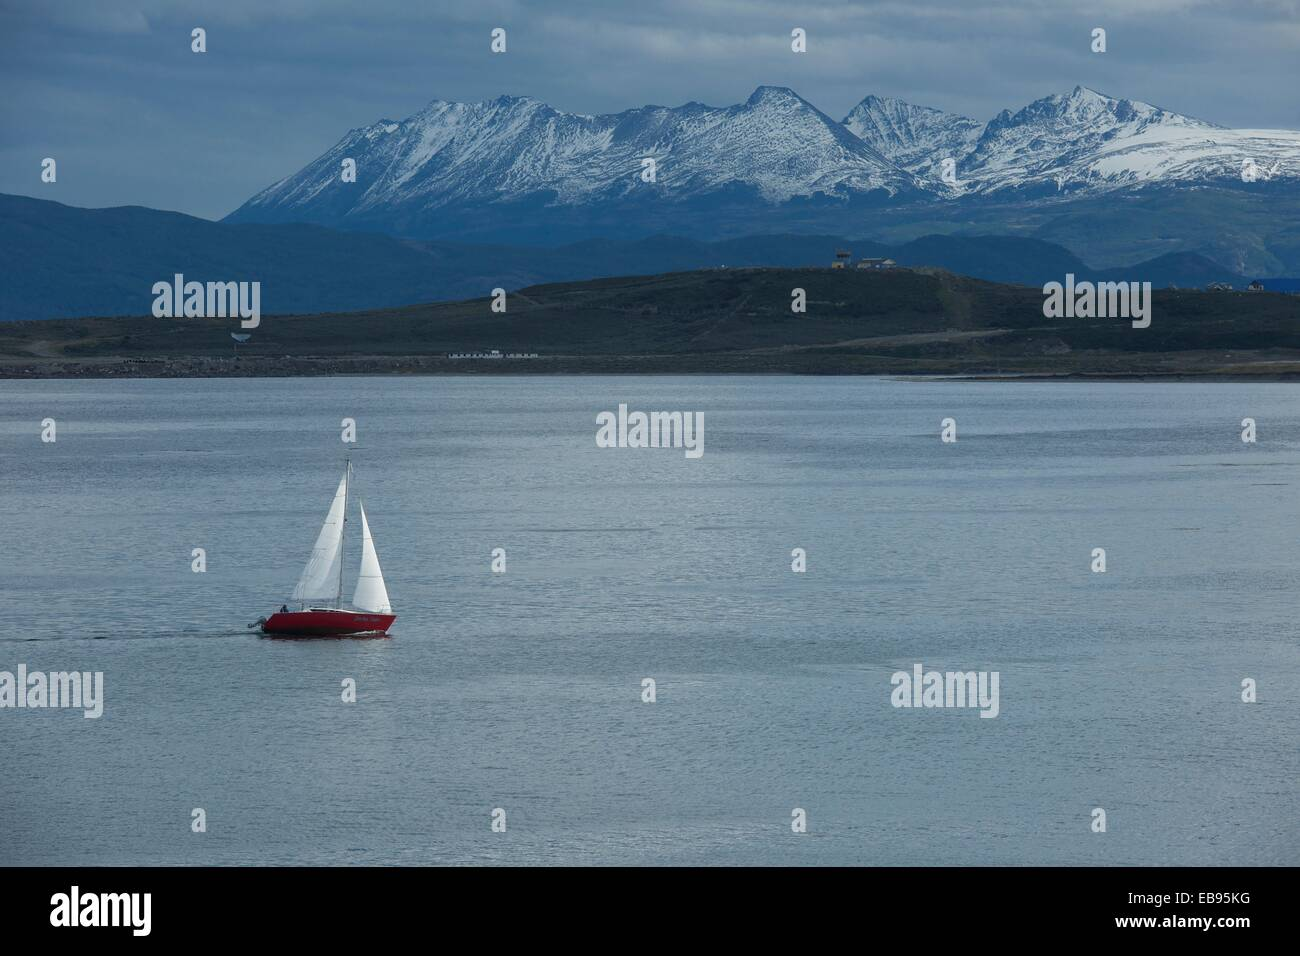 A sailboat plies the waters of the Beagle Channel, Tierra del Fuego, Argentina - Stock Image